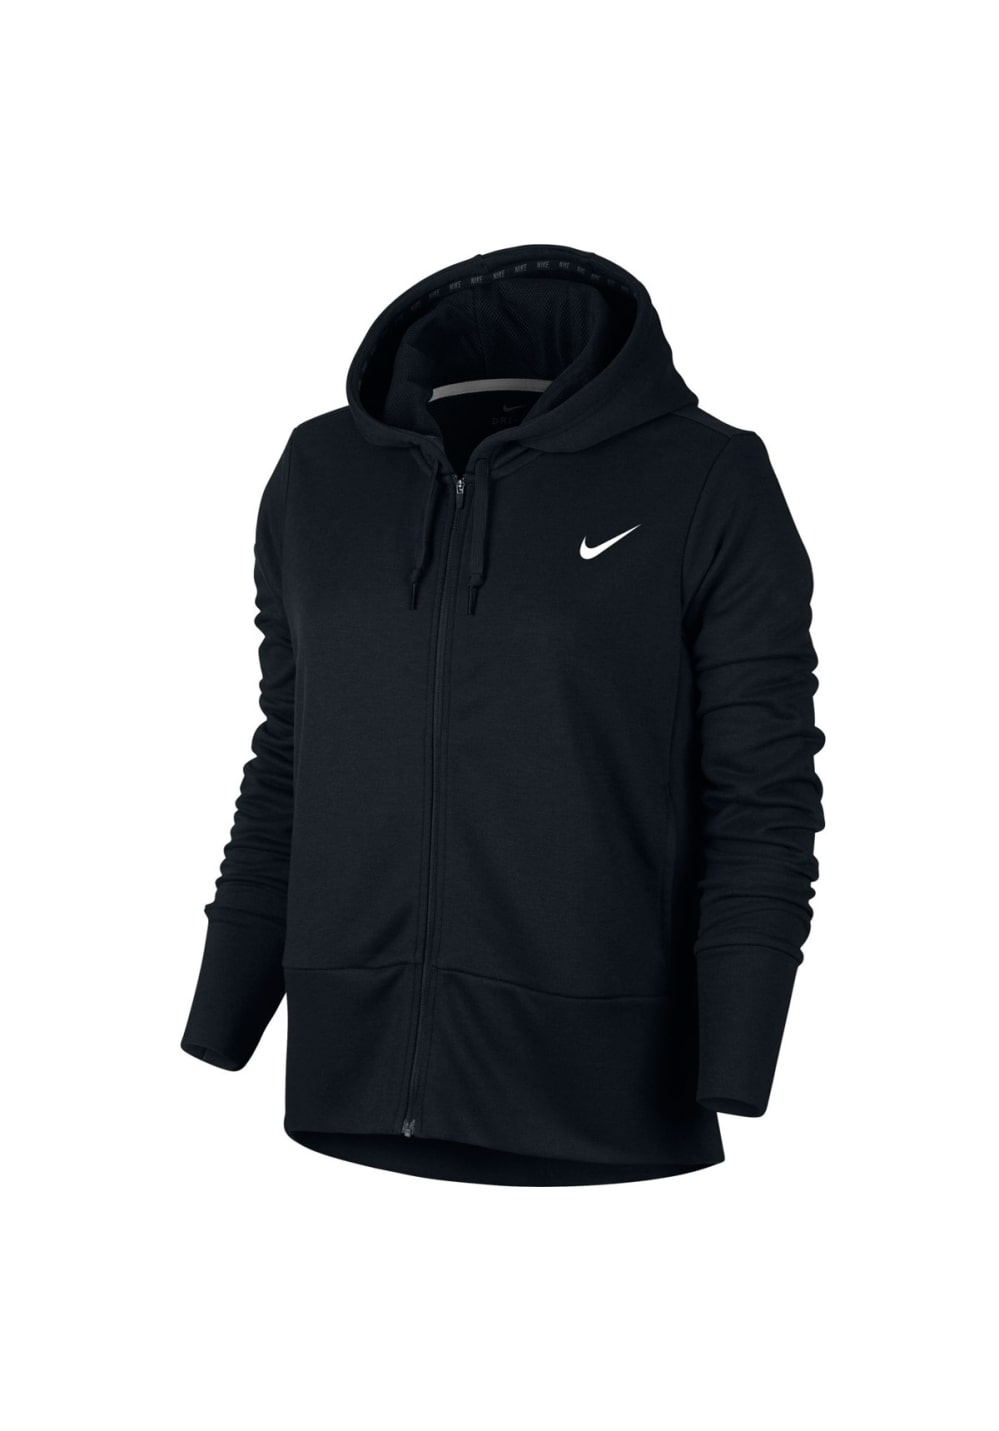 f87402a3a716 ... Nike Dry Training Hoodie - Sweatshirts   Hoodies for Women - Black.  Back to Overview. 1  2  3. Previous. Next